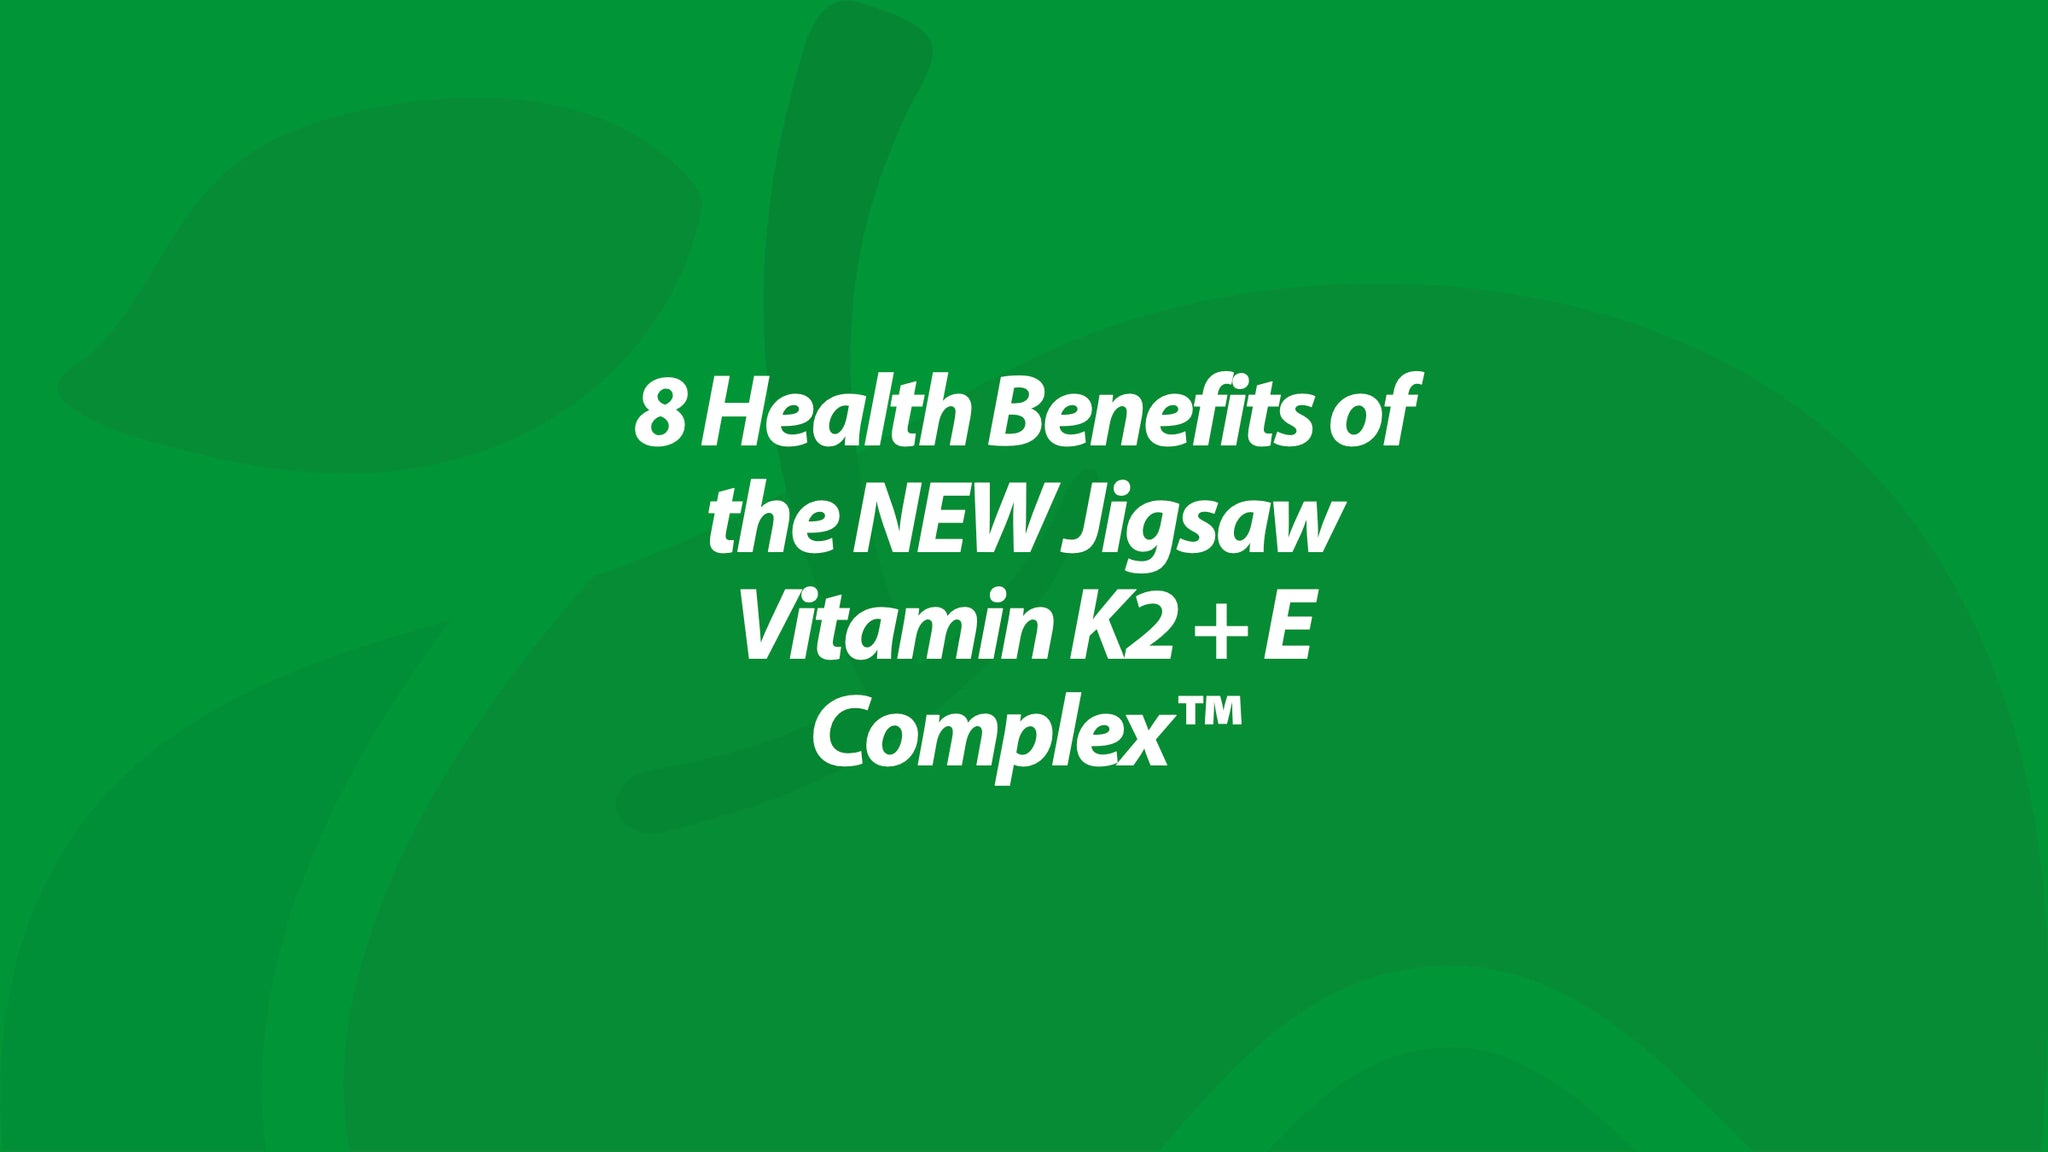 8 Health Benefits of the NEW Jigsaw Vitamin K2 + E Complex™